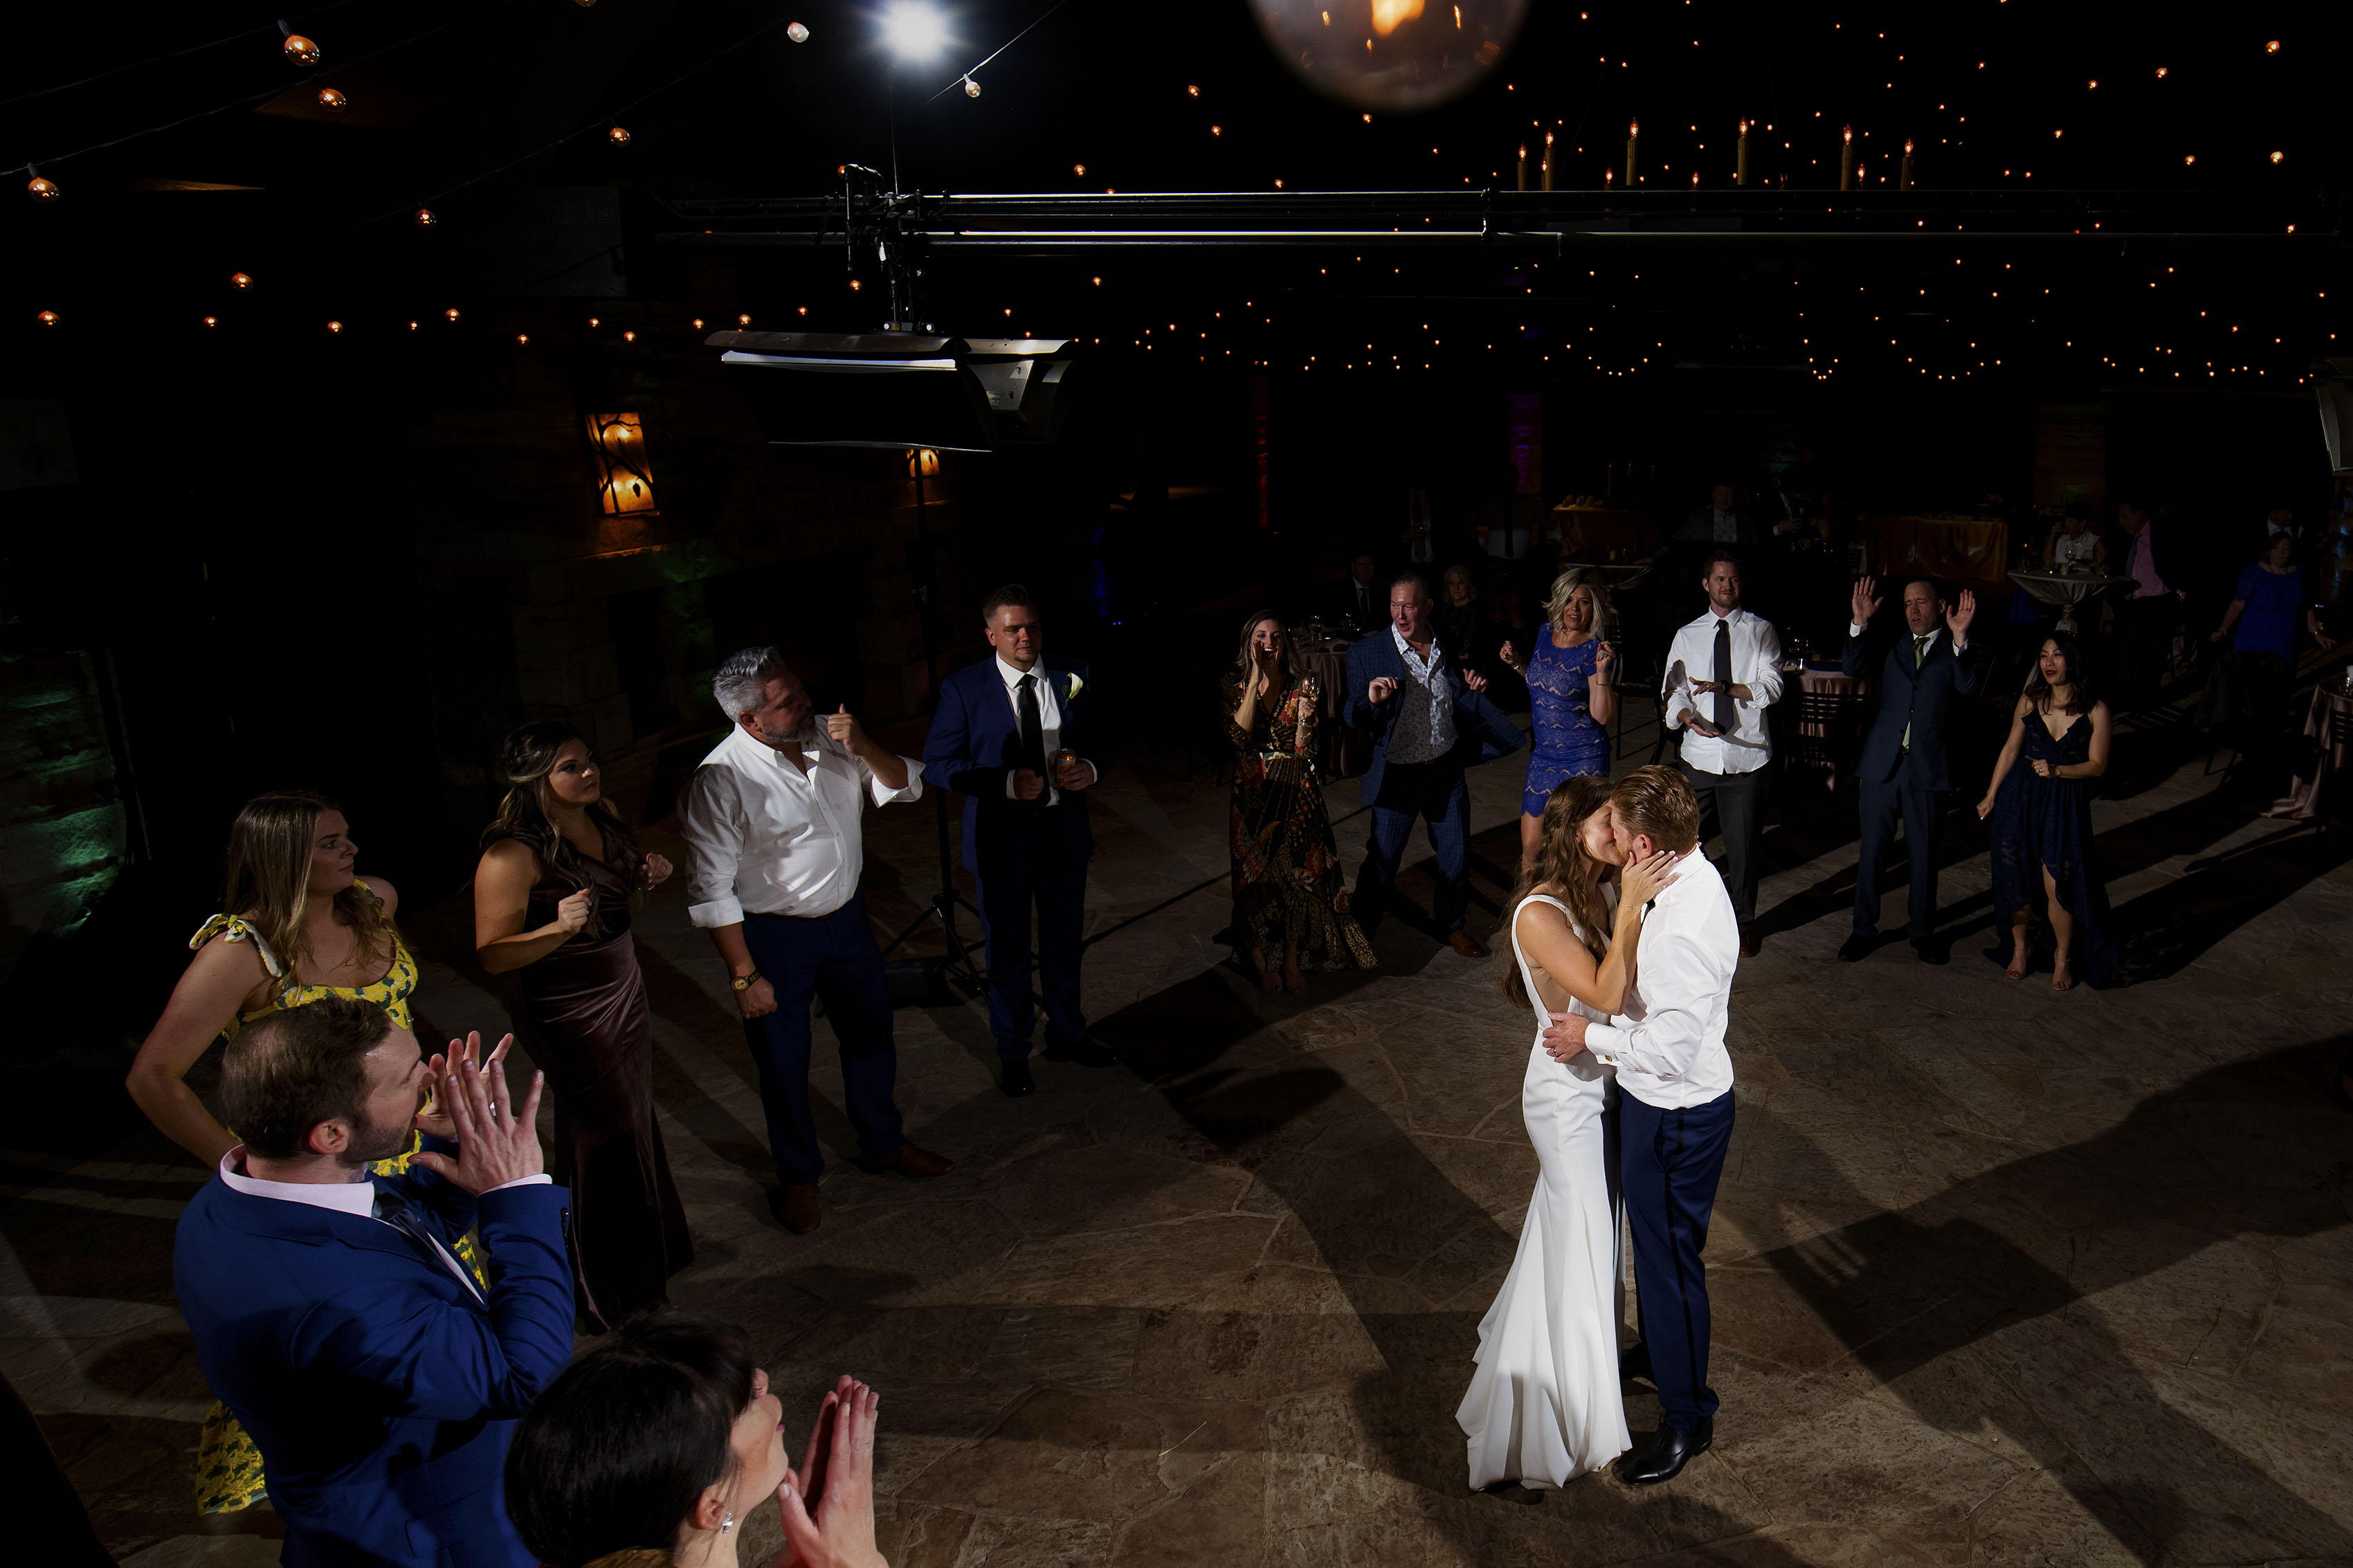 The couple share a kiss on the dance floor during their wedding at Sanctuary Golf Course